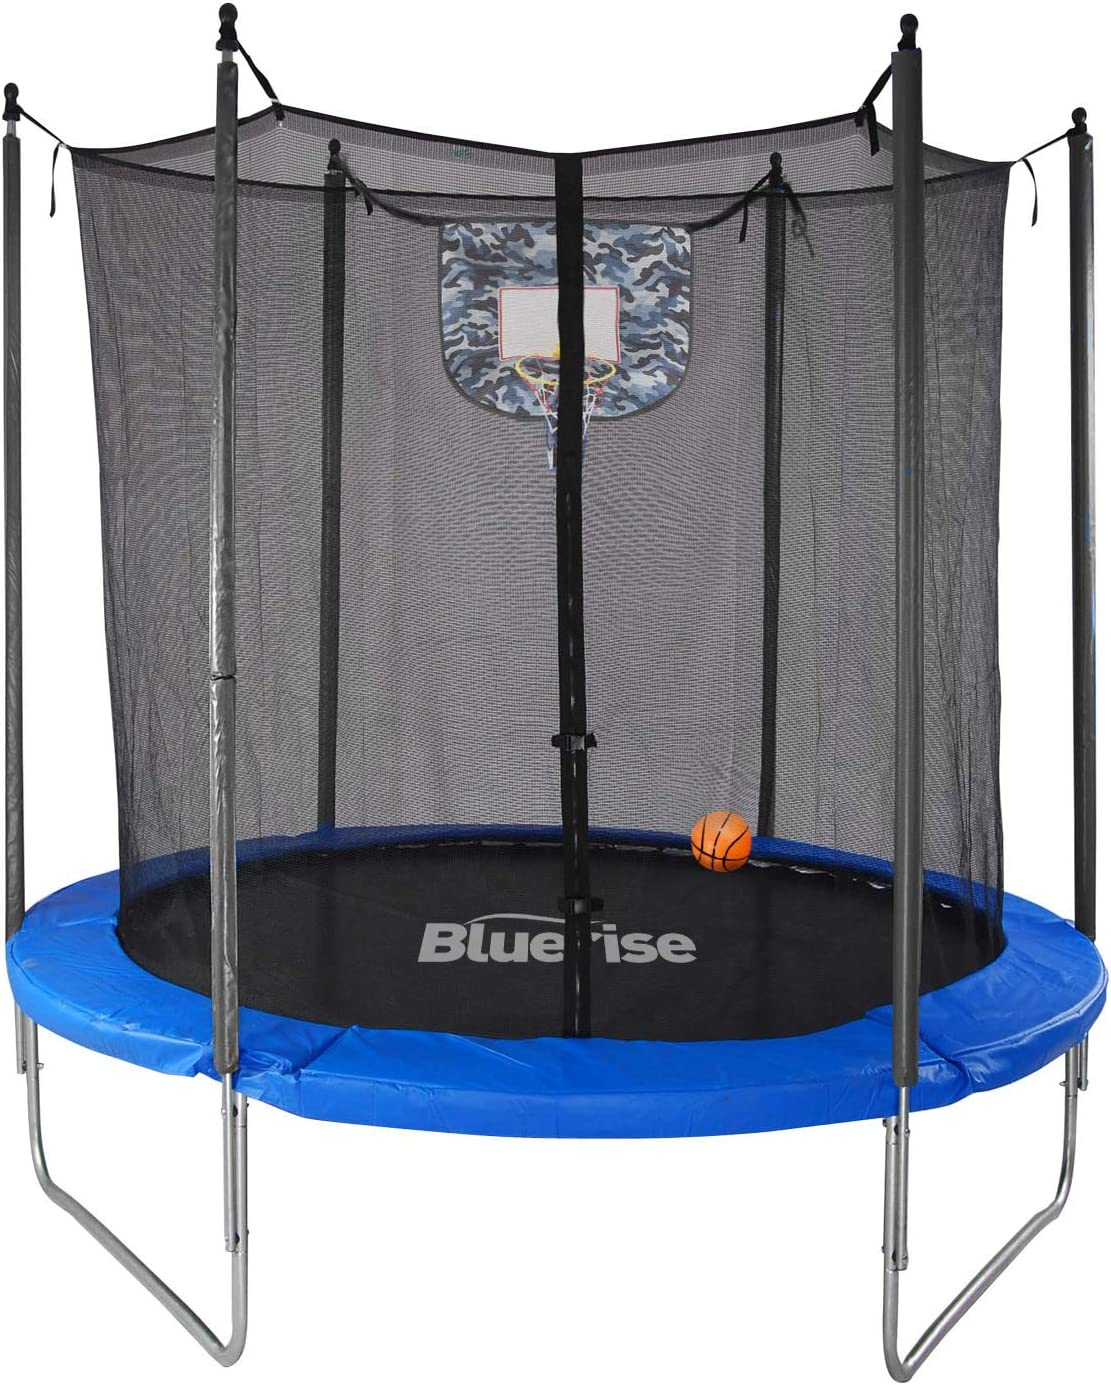 Bluerise 6ft 72 Trampoline For Kids With Enclosure Net Toddler Trampoline With Basketball Hoop Easy To Assemble Little Tikes Trampoline Personal Indoor Trampoline For Kids Small Trampoline Outdoor Sports